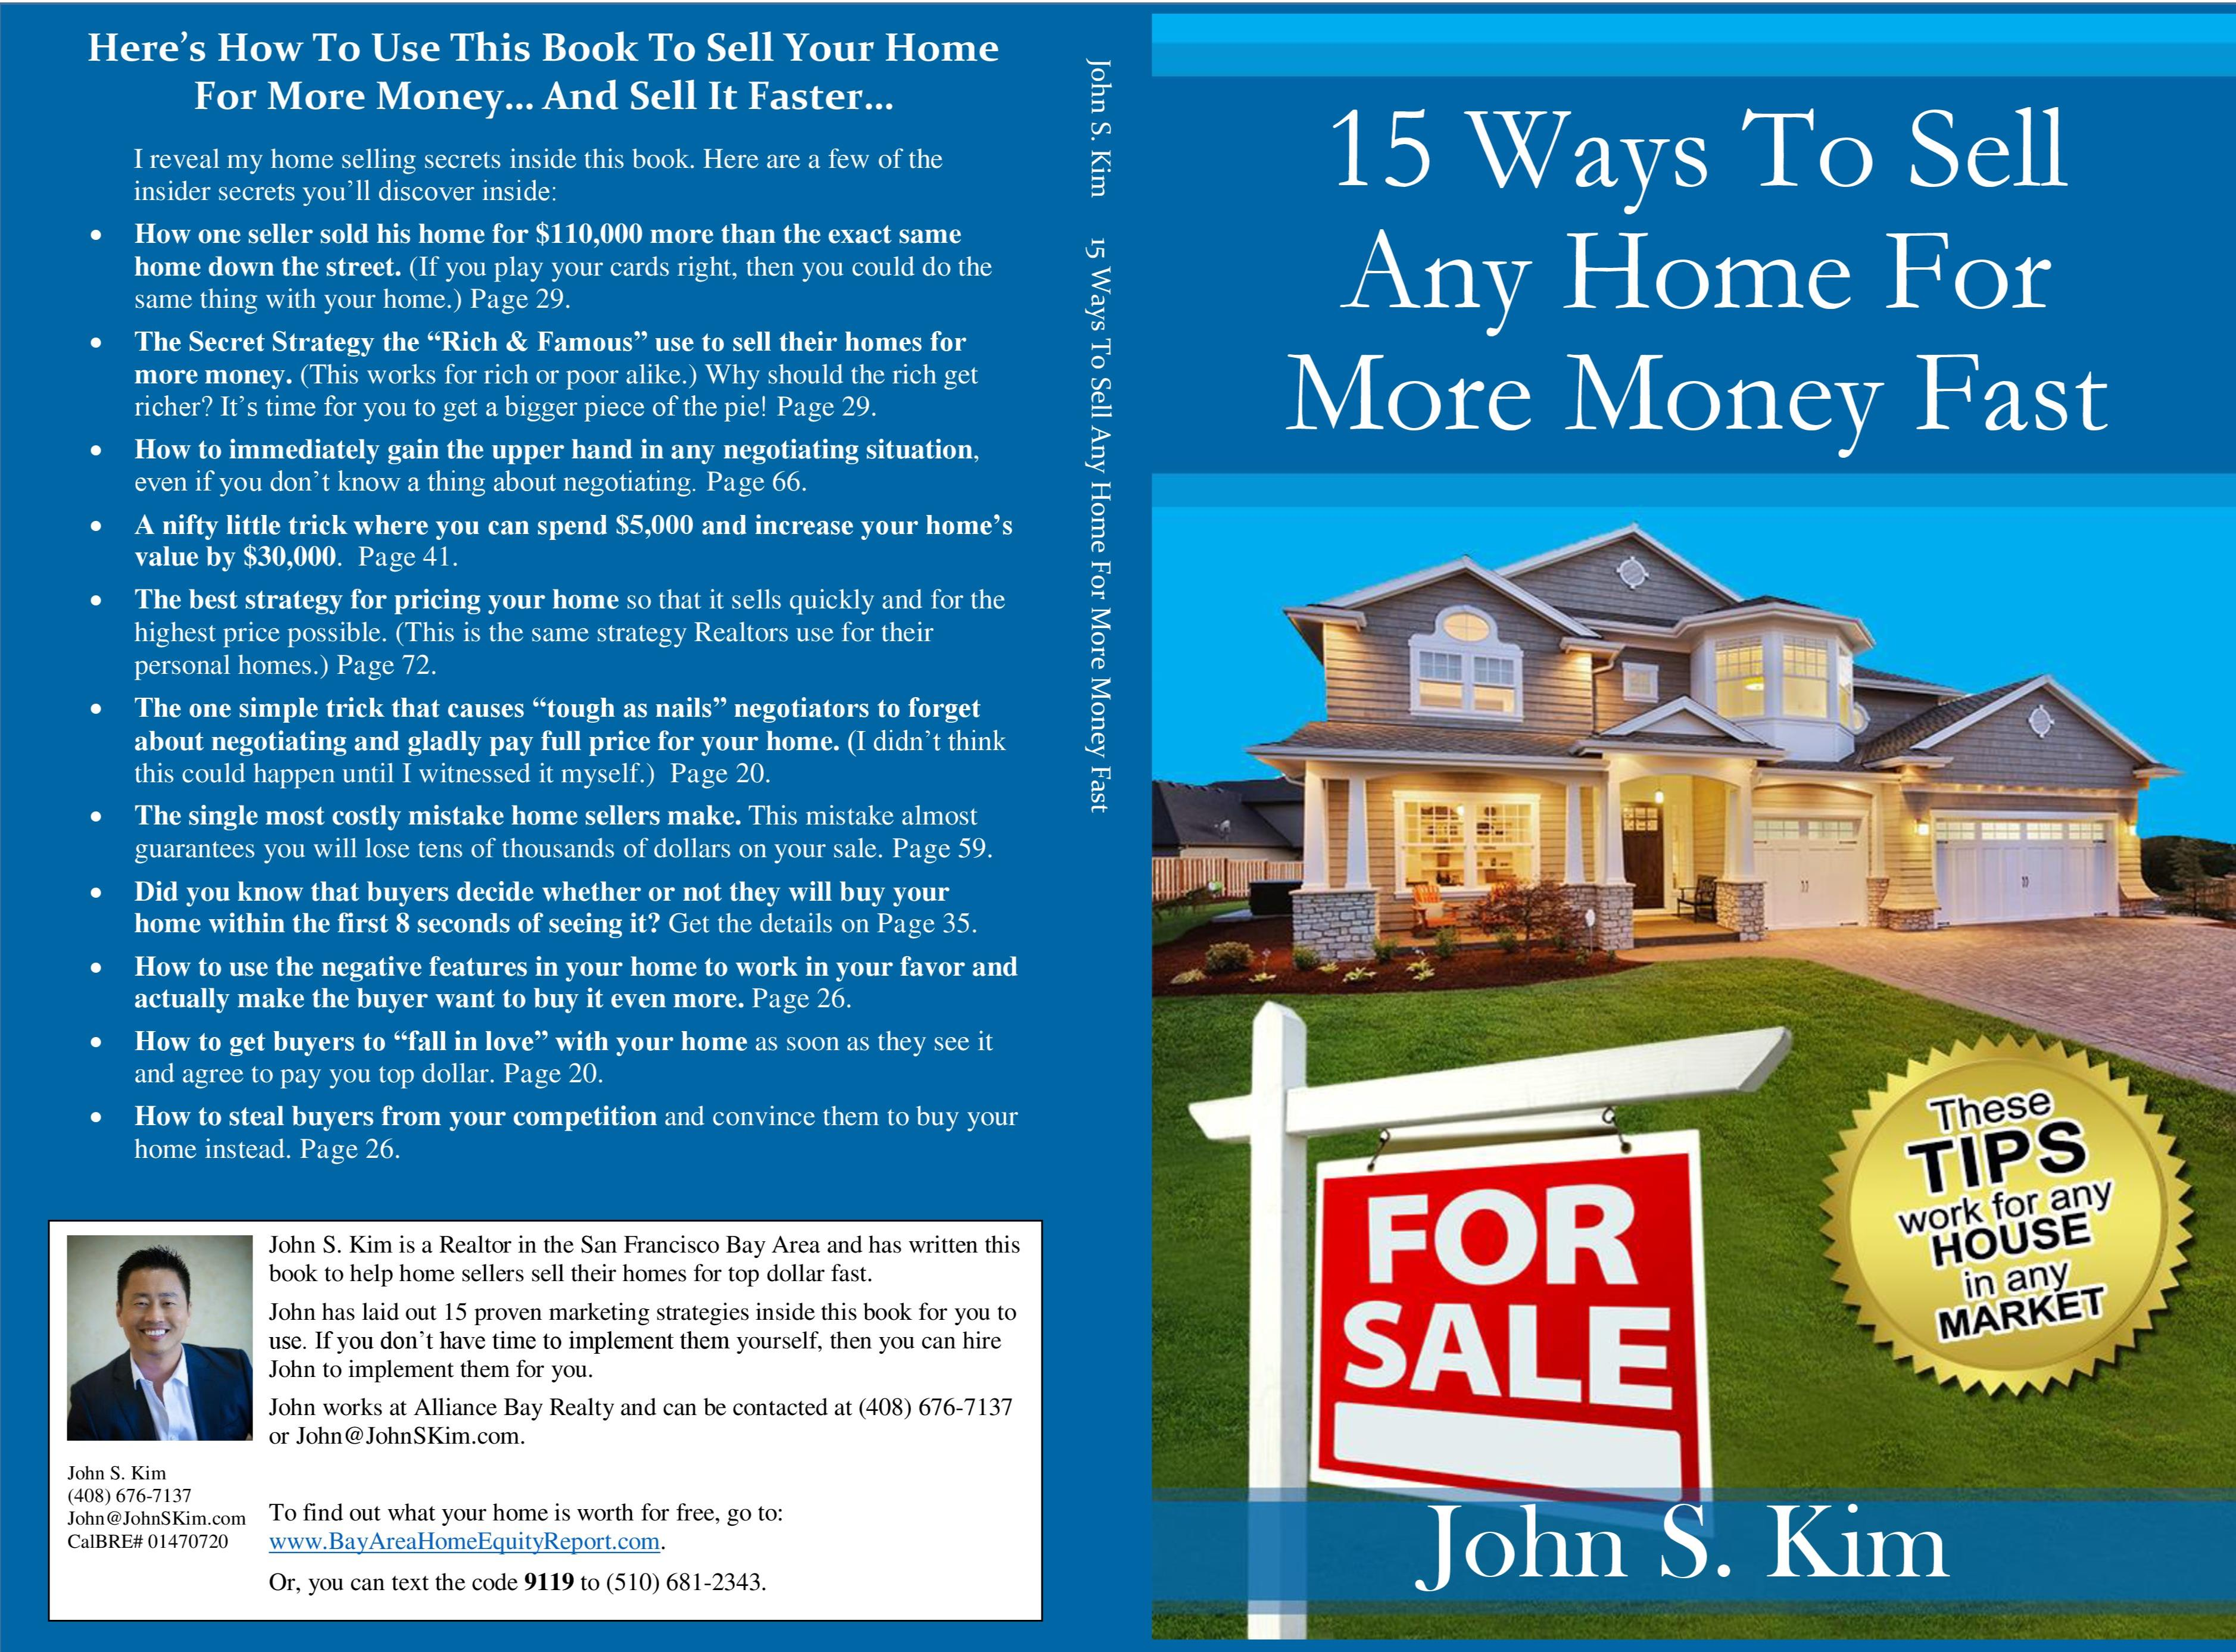 15 Ways To Sell Any Home For More Money Fast cover image